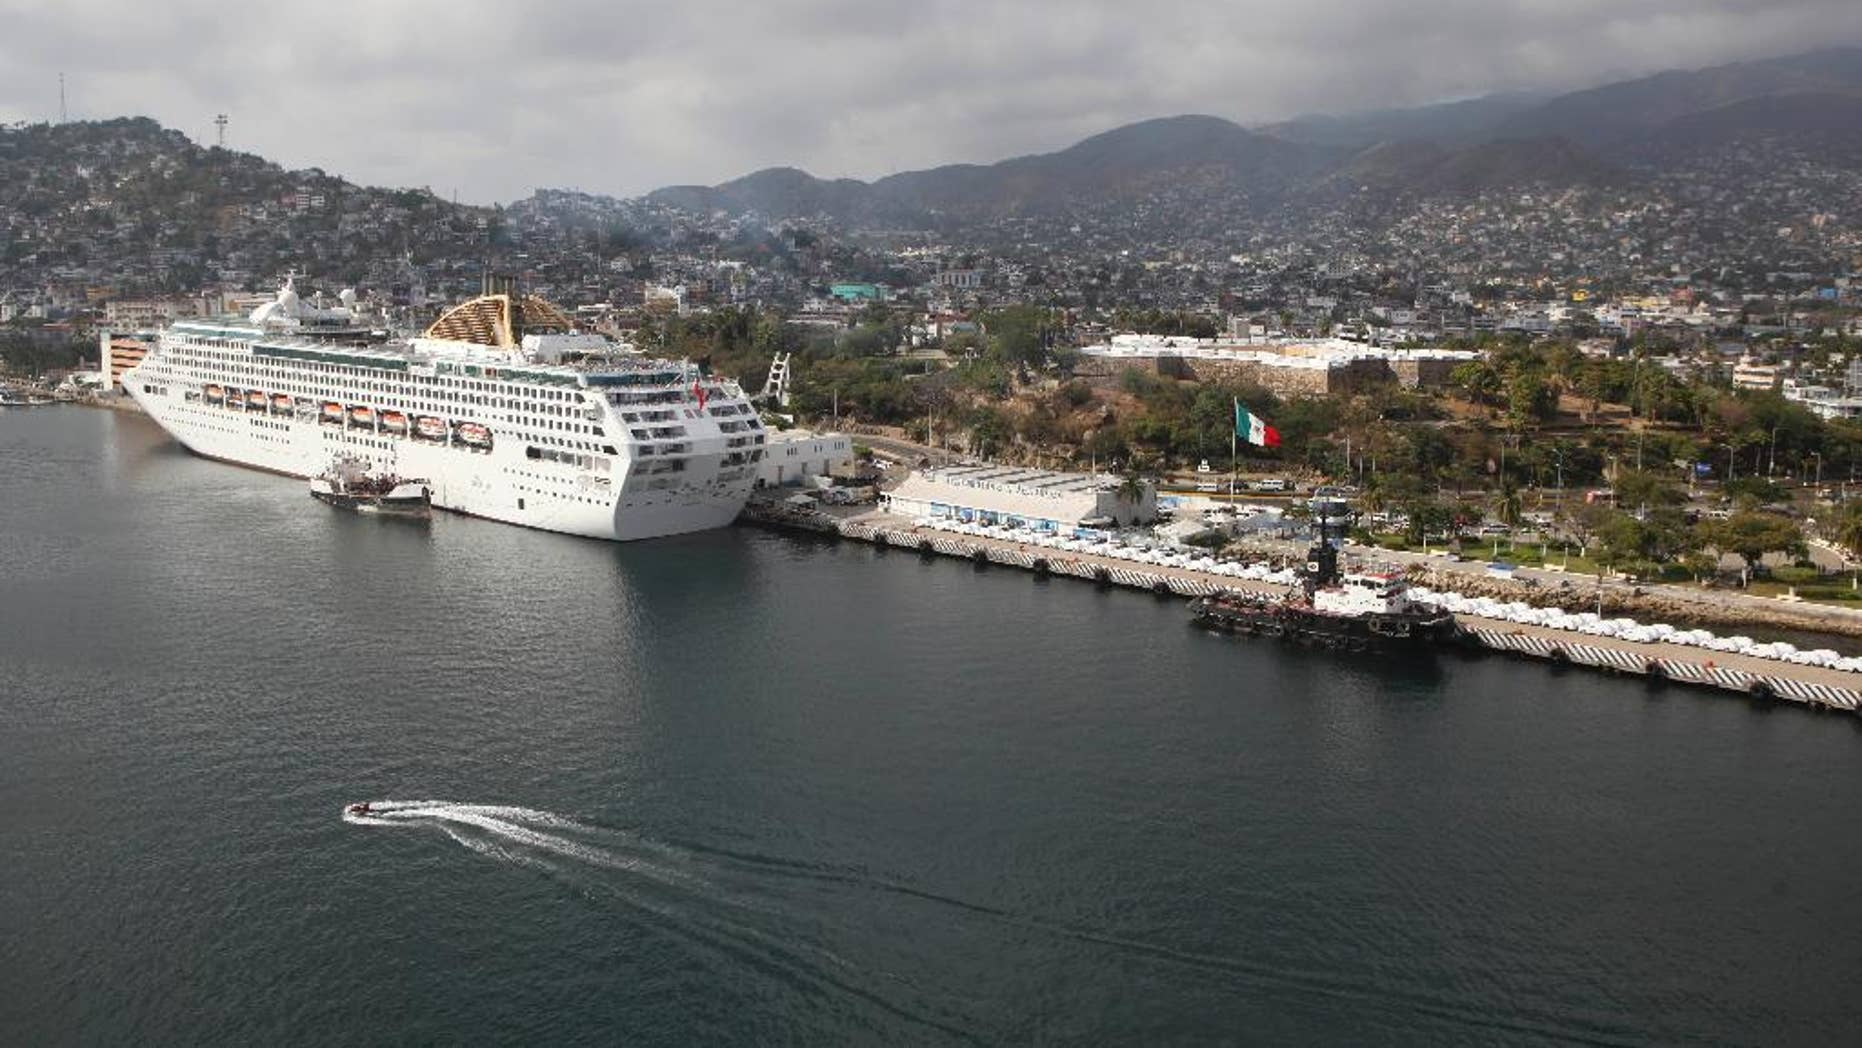 FILE - In this Jan. 16, 2011 file photo, a cruise ship is docked at the port in Acapulco, Mexico. The U.S. government on Friday, April 15, 2016 barred its employees from traveling to the Mexican resort city of Acapulco, where a rise in homicides attributed to drug gangs has made it one of the world's deadliest cities in recent years. (AP Photo/Alexandre Meneghini, File)